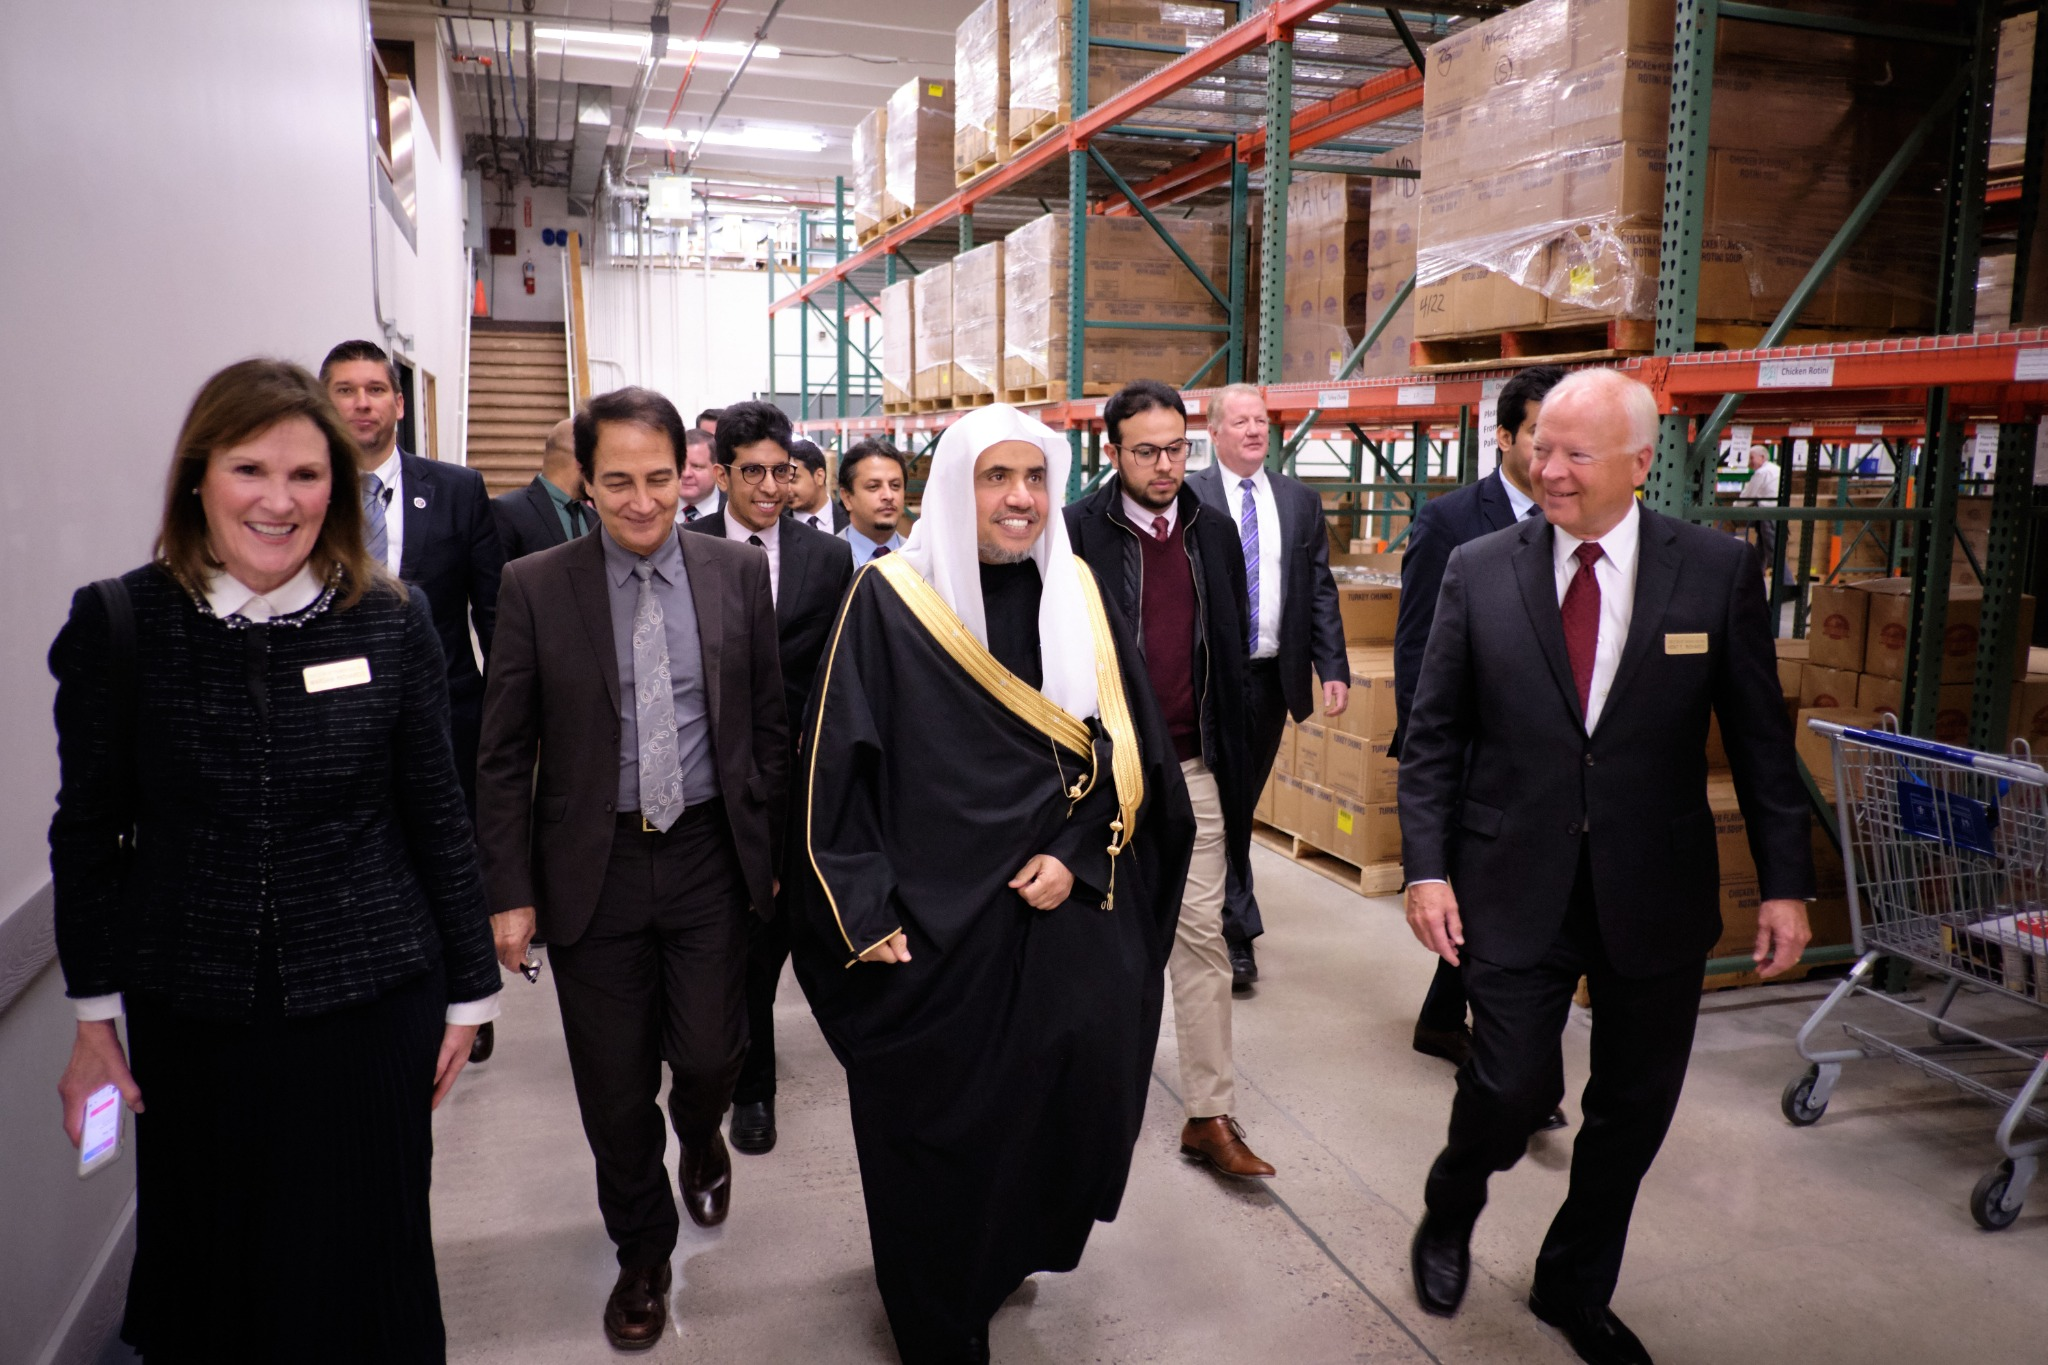 His Excellency Dr. Mohammad Al-Issa, secretary-general of the Muslim World League, tours the Bishops' Central Storehouse in Salt Lake City on Nov. 5, 2019.